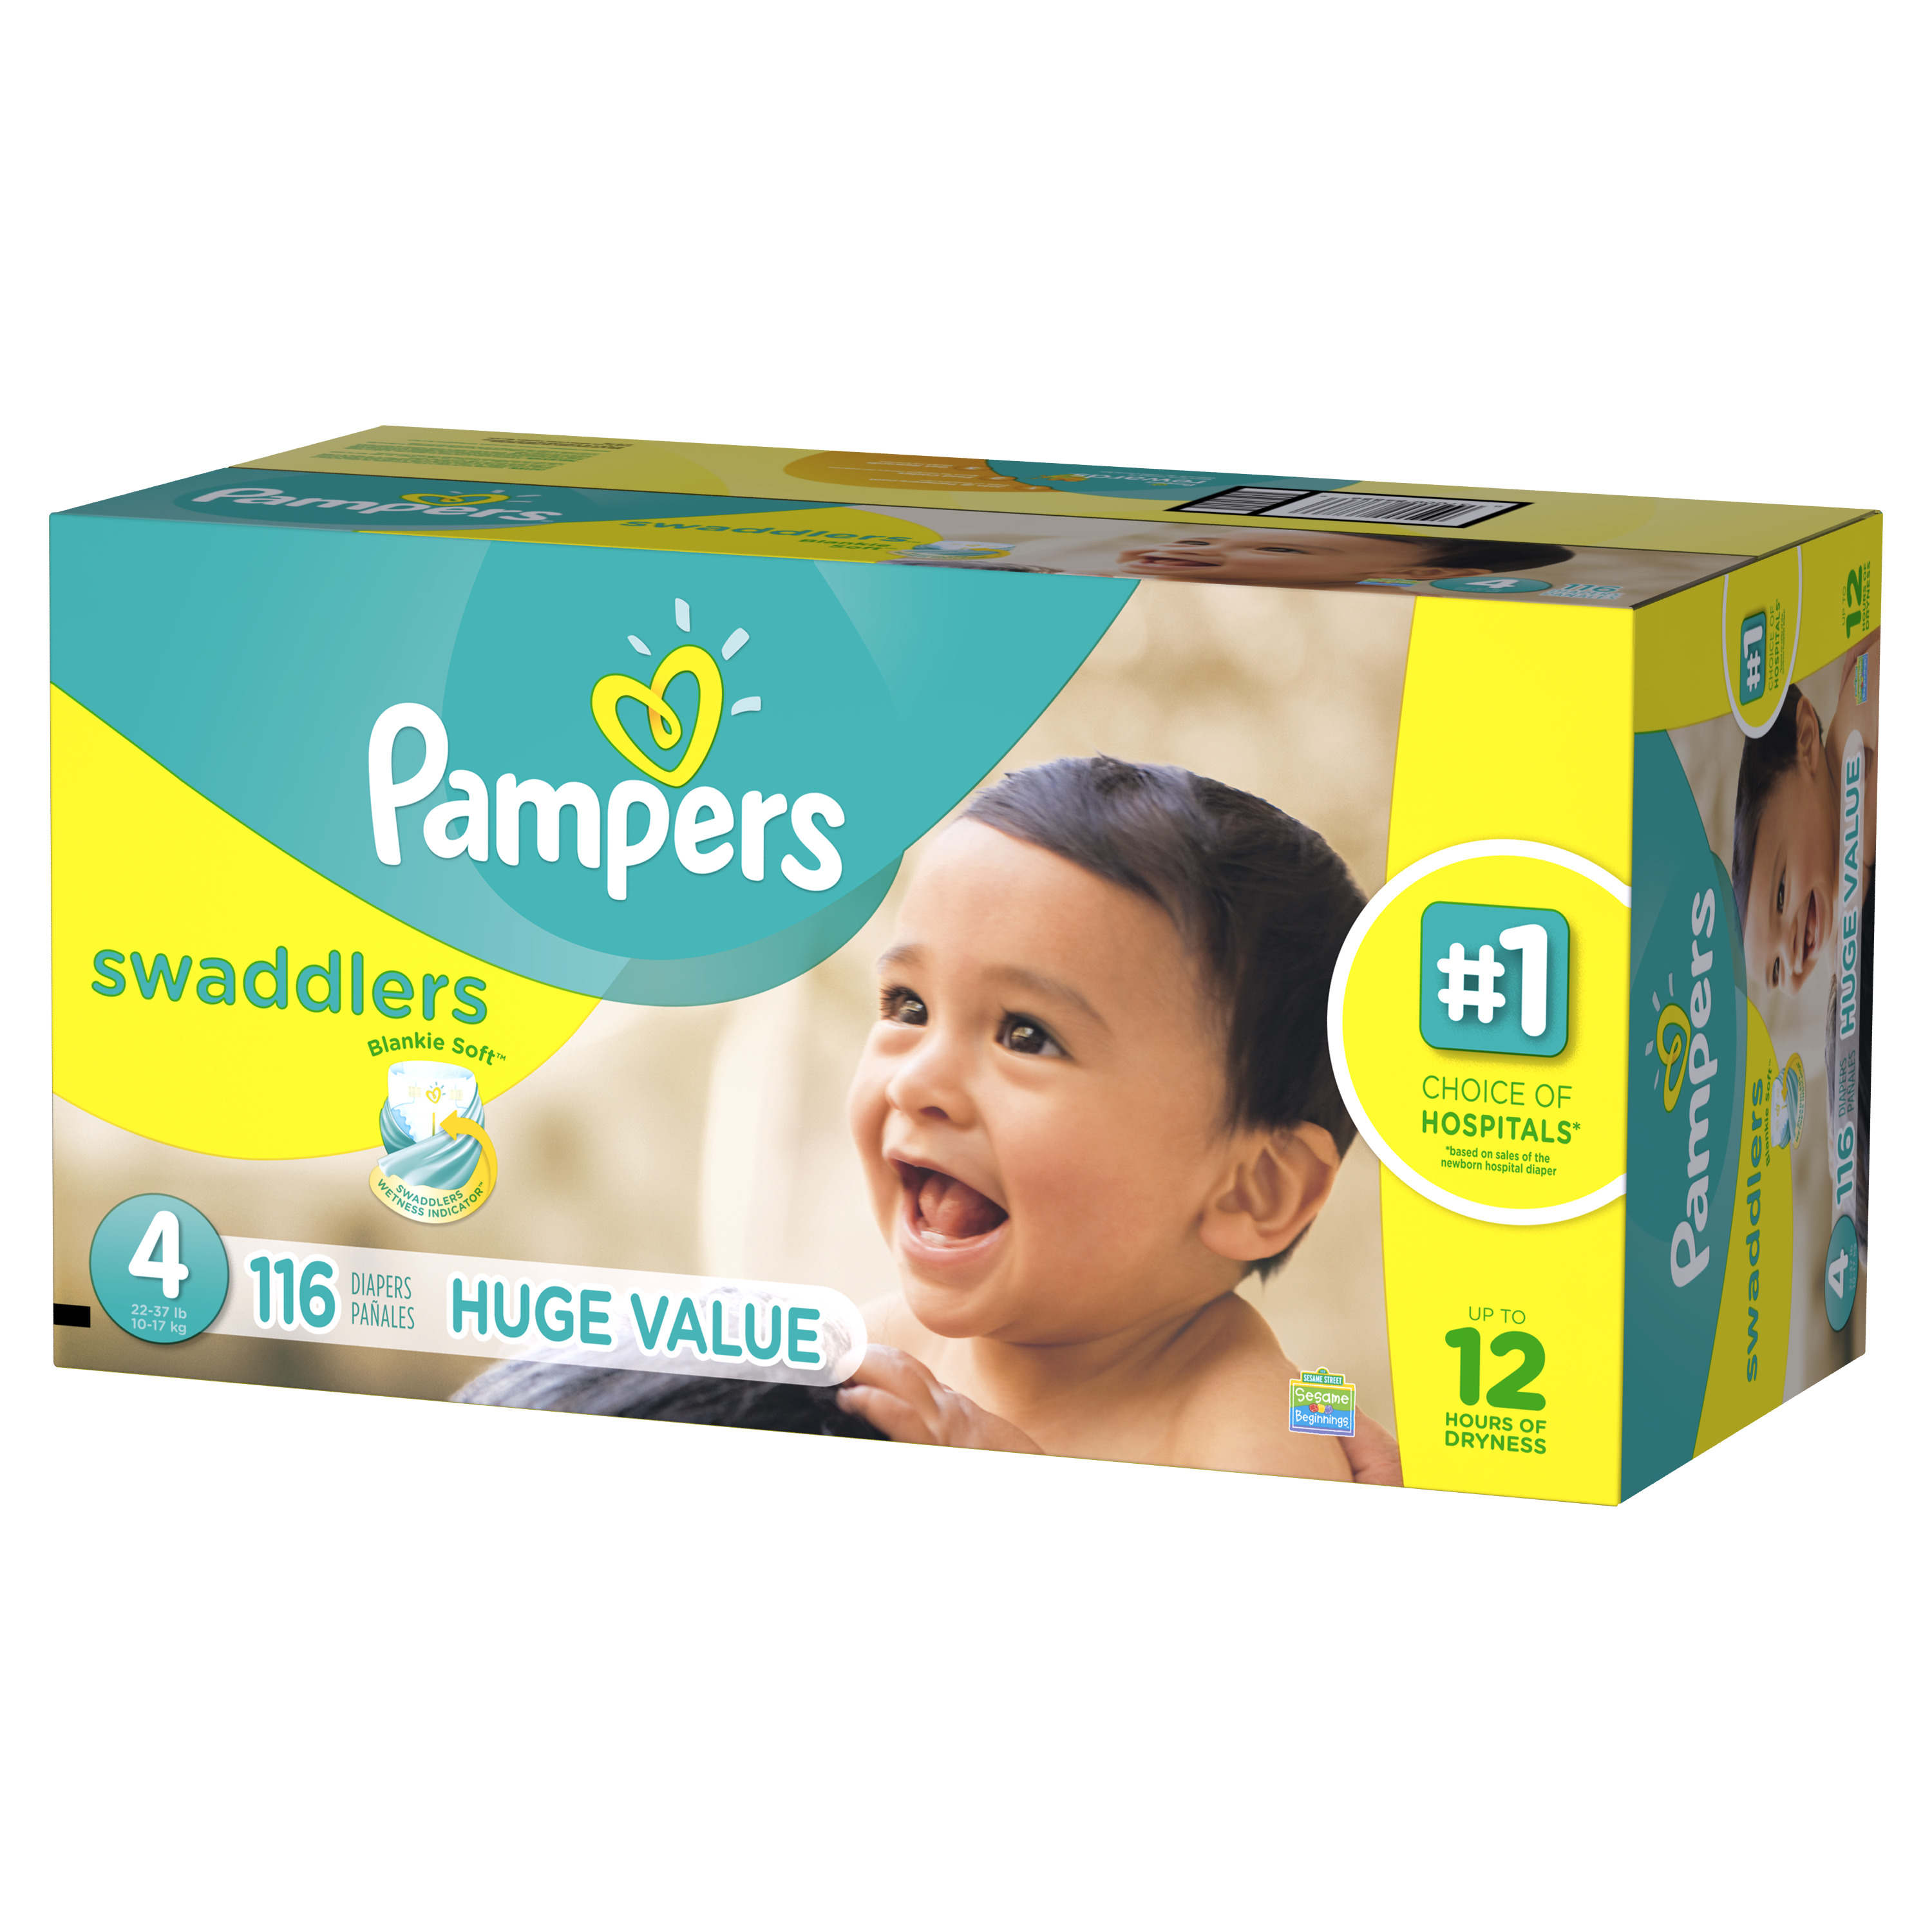 Pampers Swaddlers Diapers Size 4 116 count